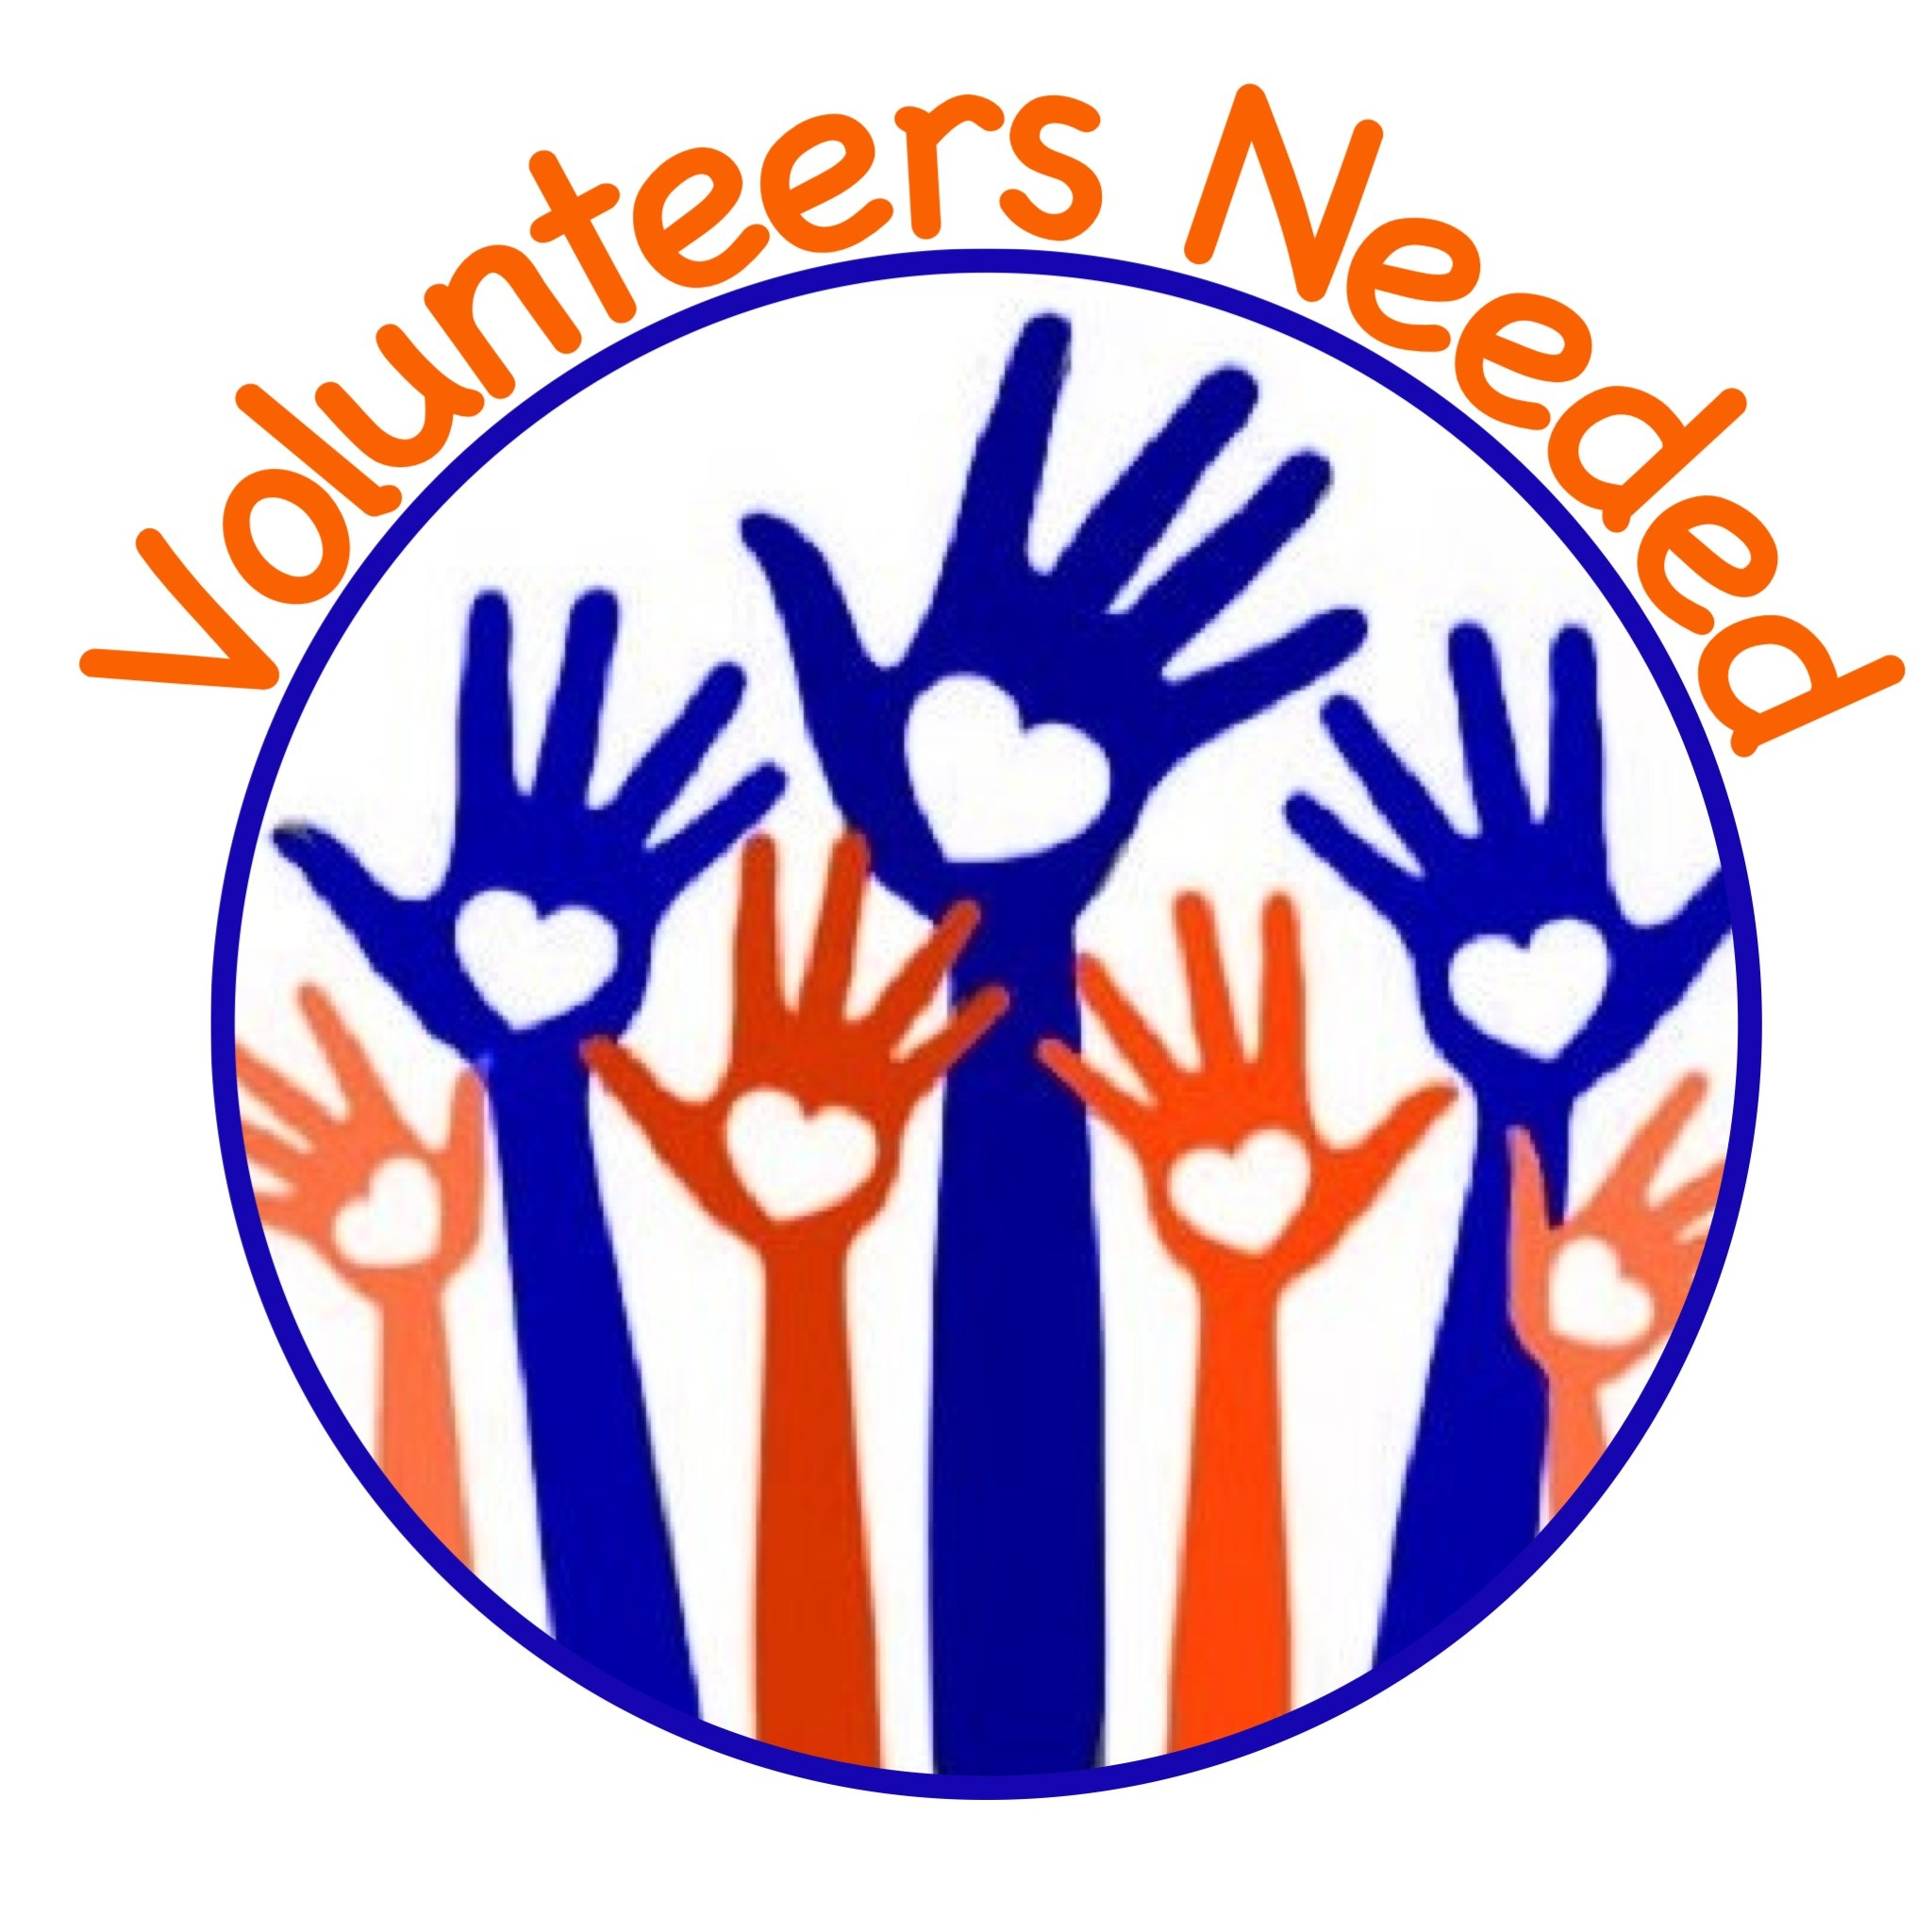 Volunteer needed clipart image library stock Volunteer needed clipart 6 » Clipart Portal image library stock